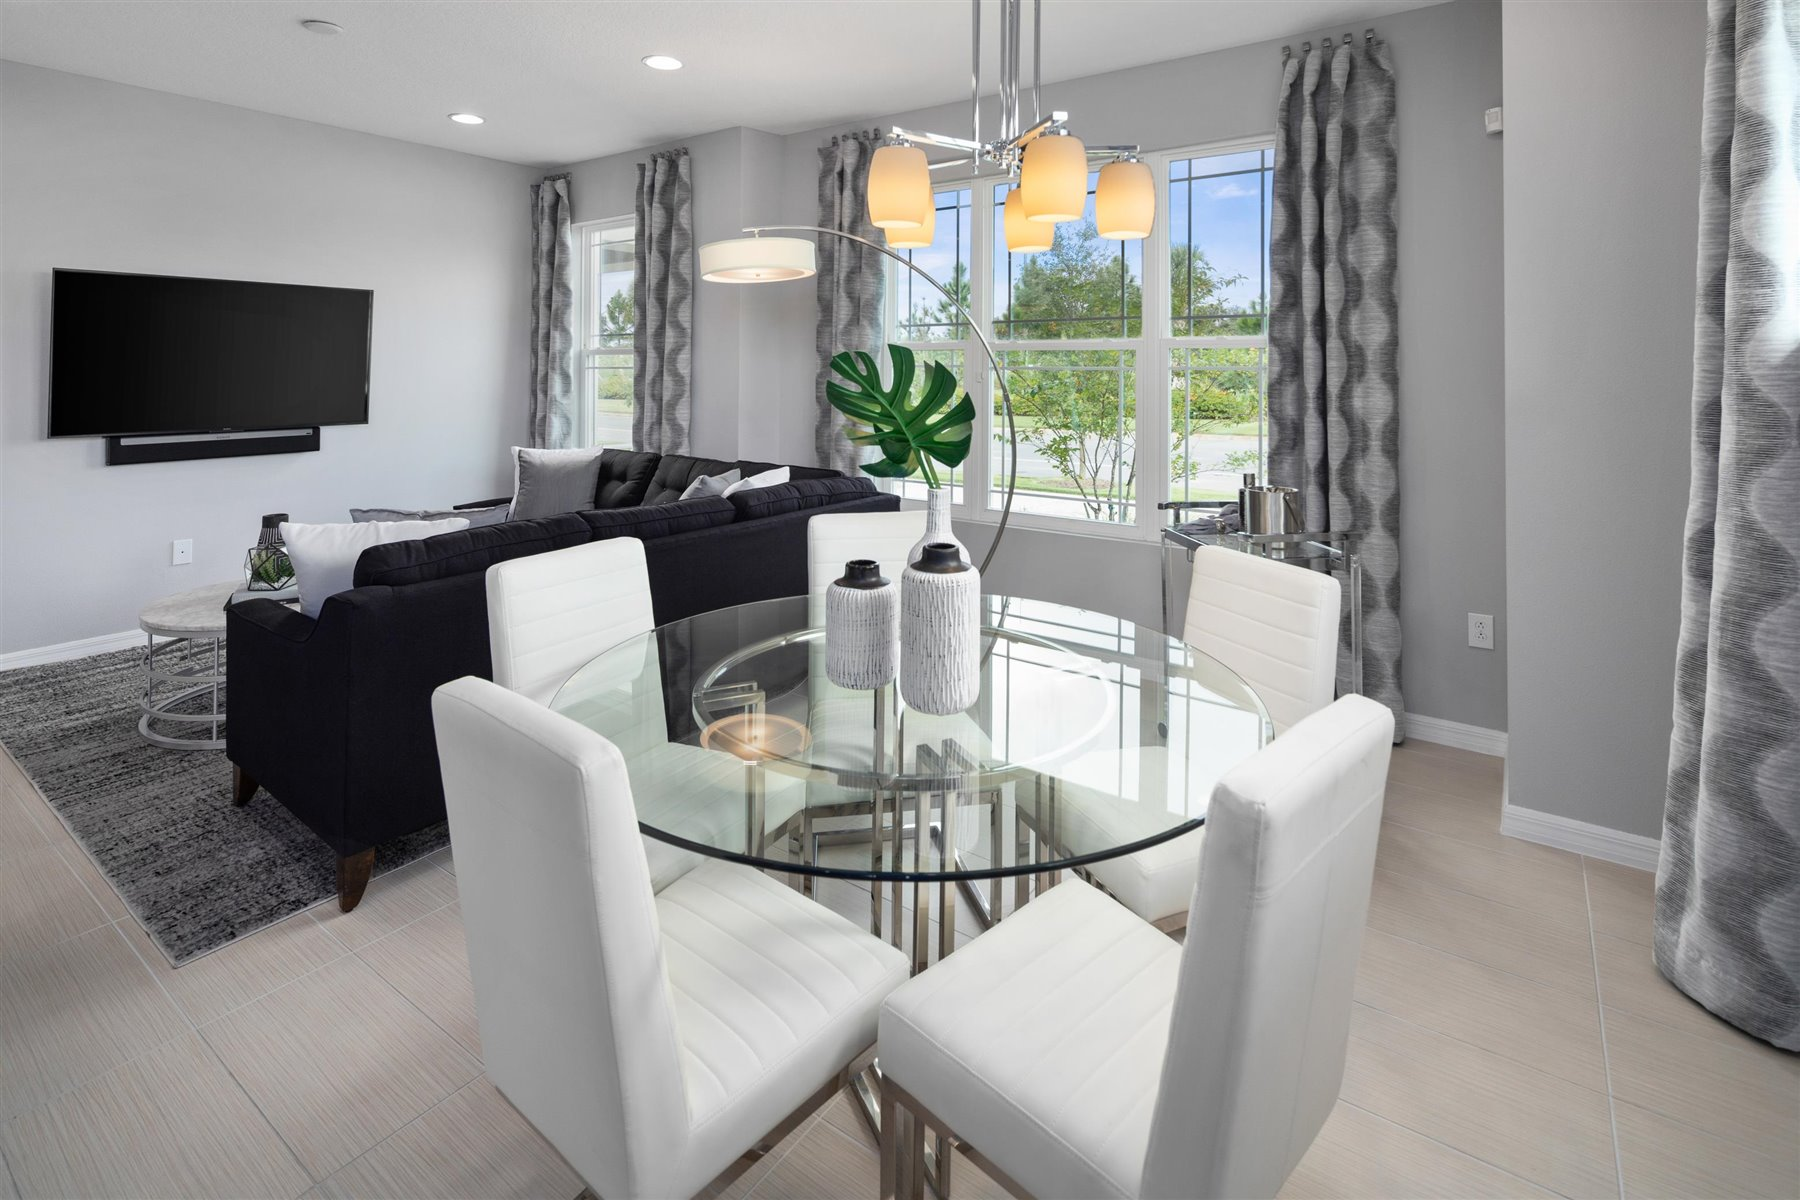 Marabel III Plan Dining at Randal Walk in Orlando Florida by Mattamy Homes